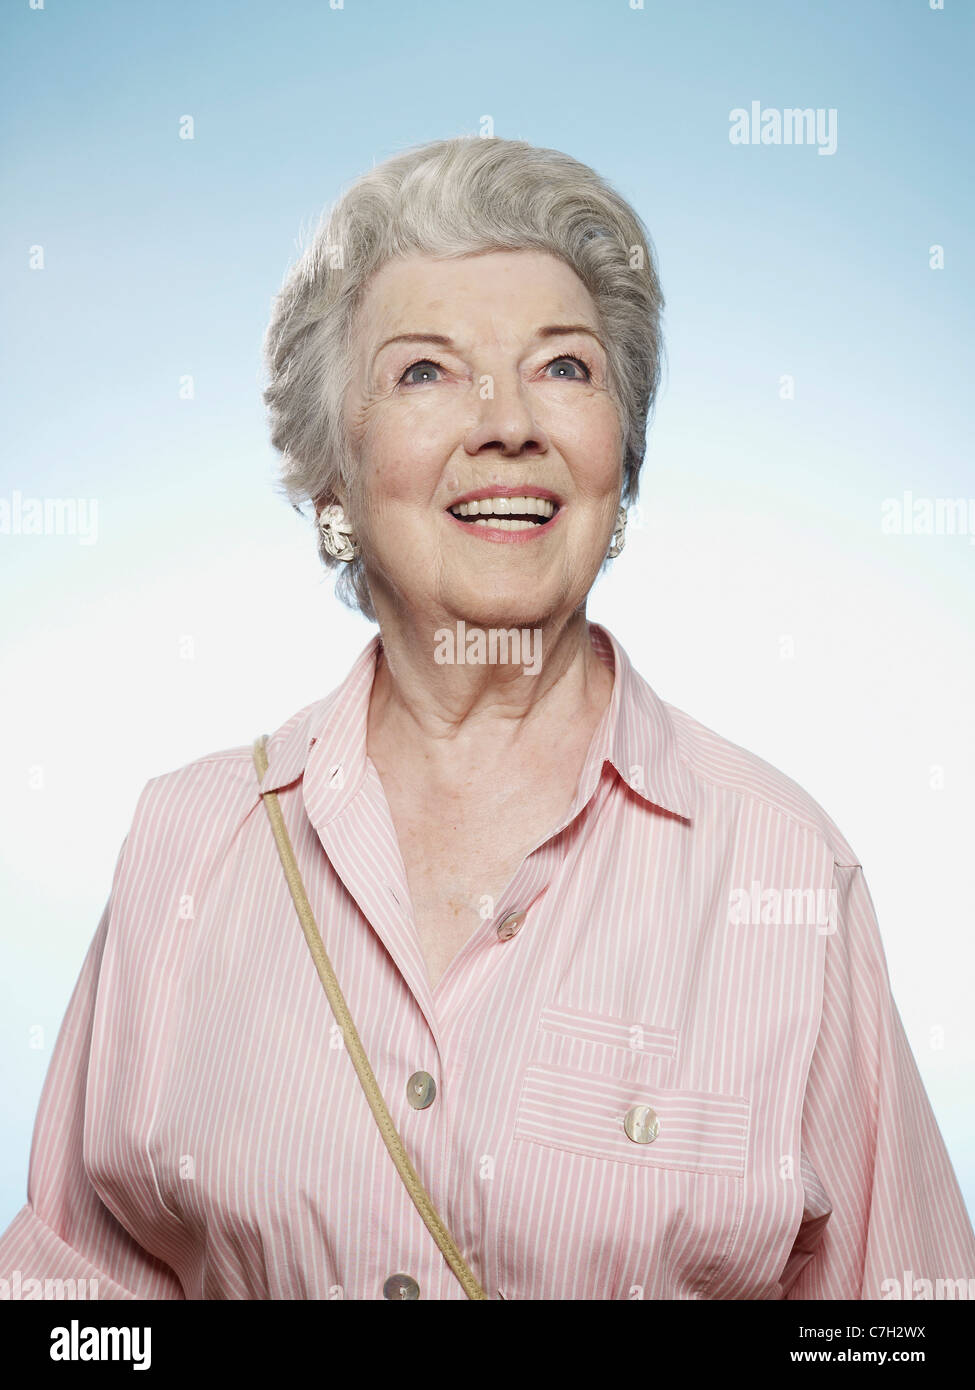 Profile of senior woman smiling and looking up - Stock Image